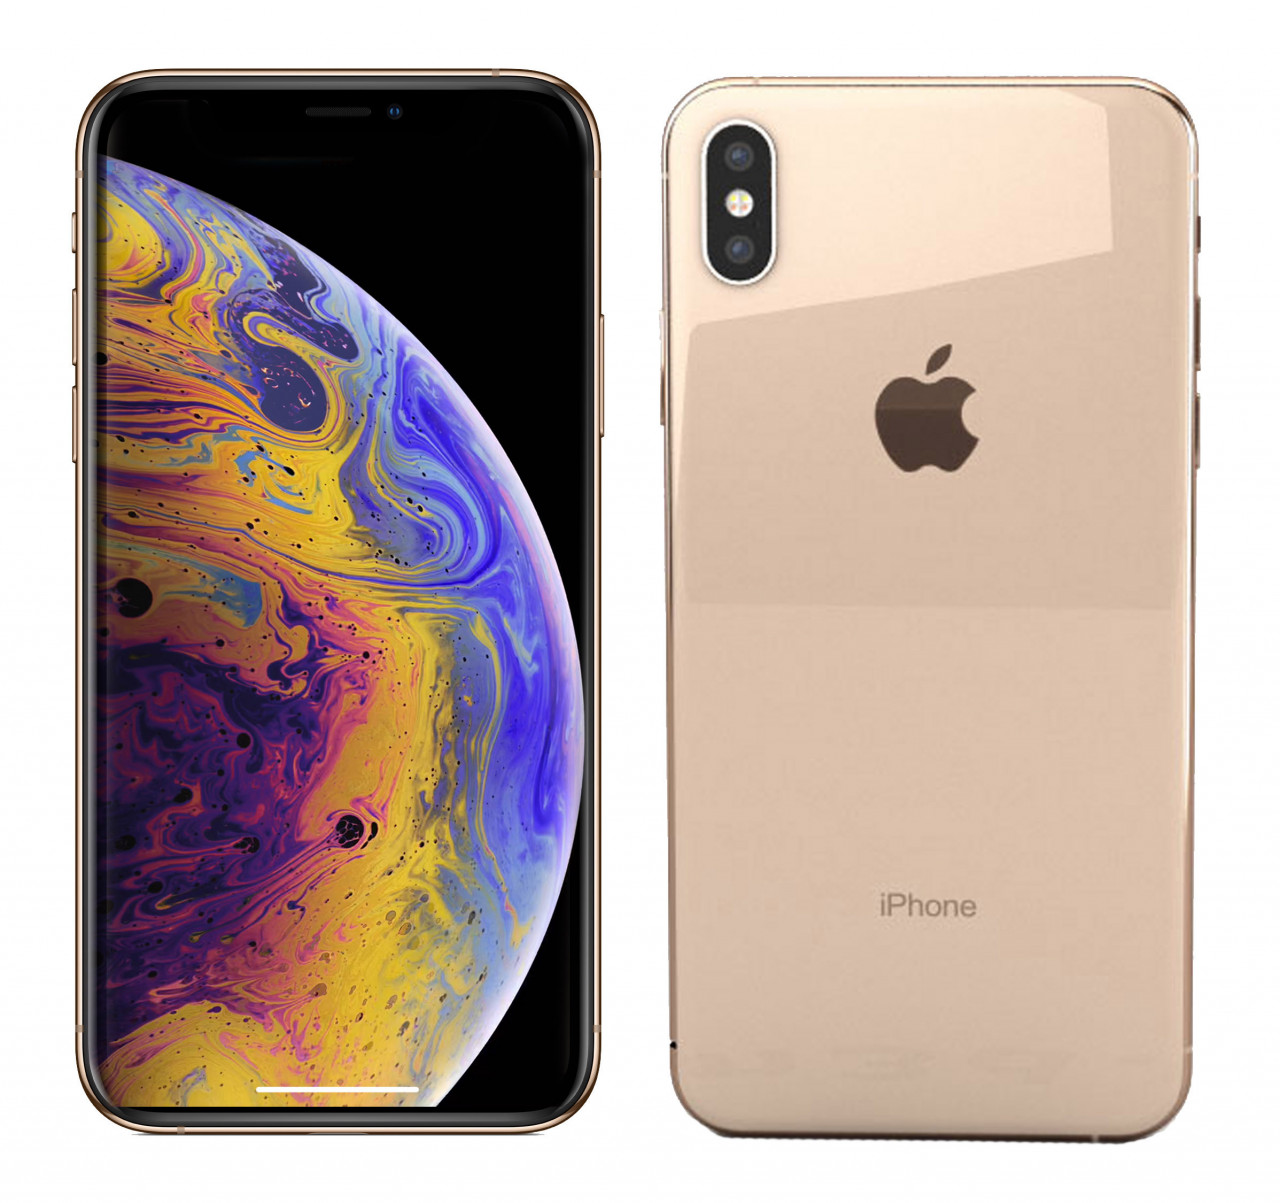 Apple Iphone Xs Max 256gb Gold Price In Pakistan Home Shopping